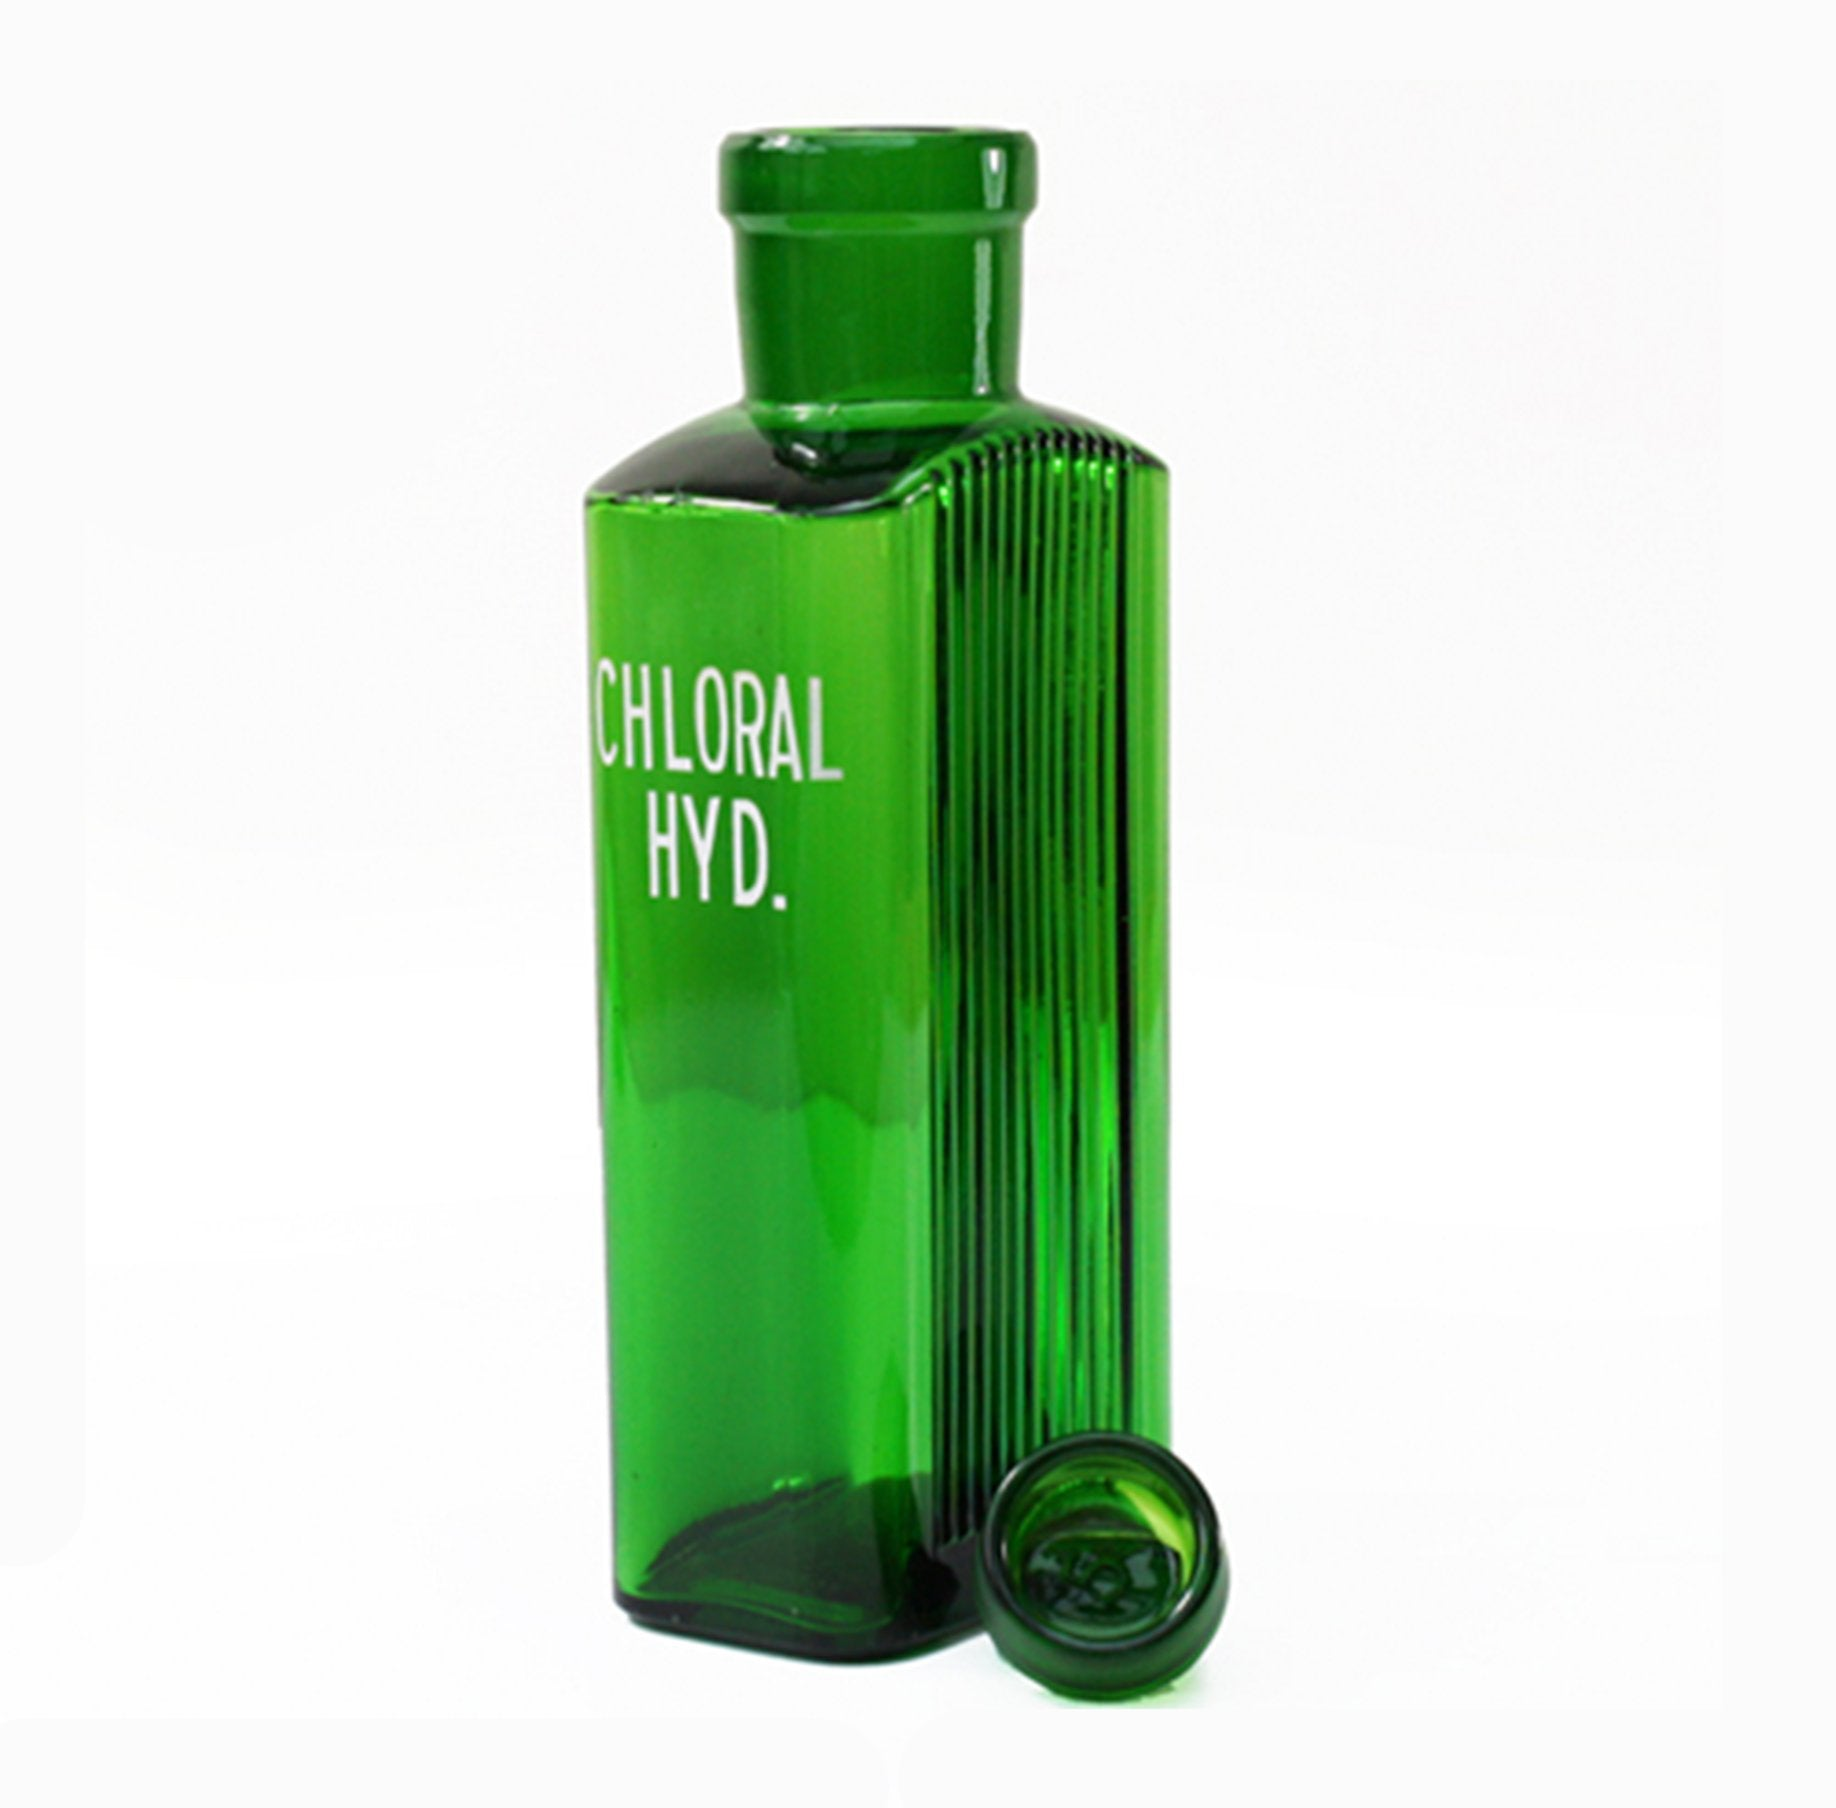 Vintage Green Apothecary Bottle. Find this and other Beautiful Vintage items for you home at Intovintage.co.uk